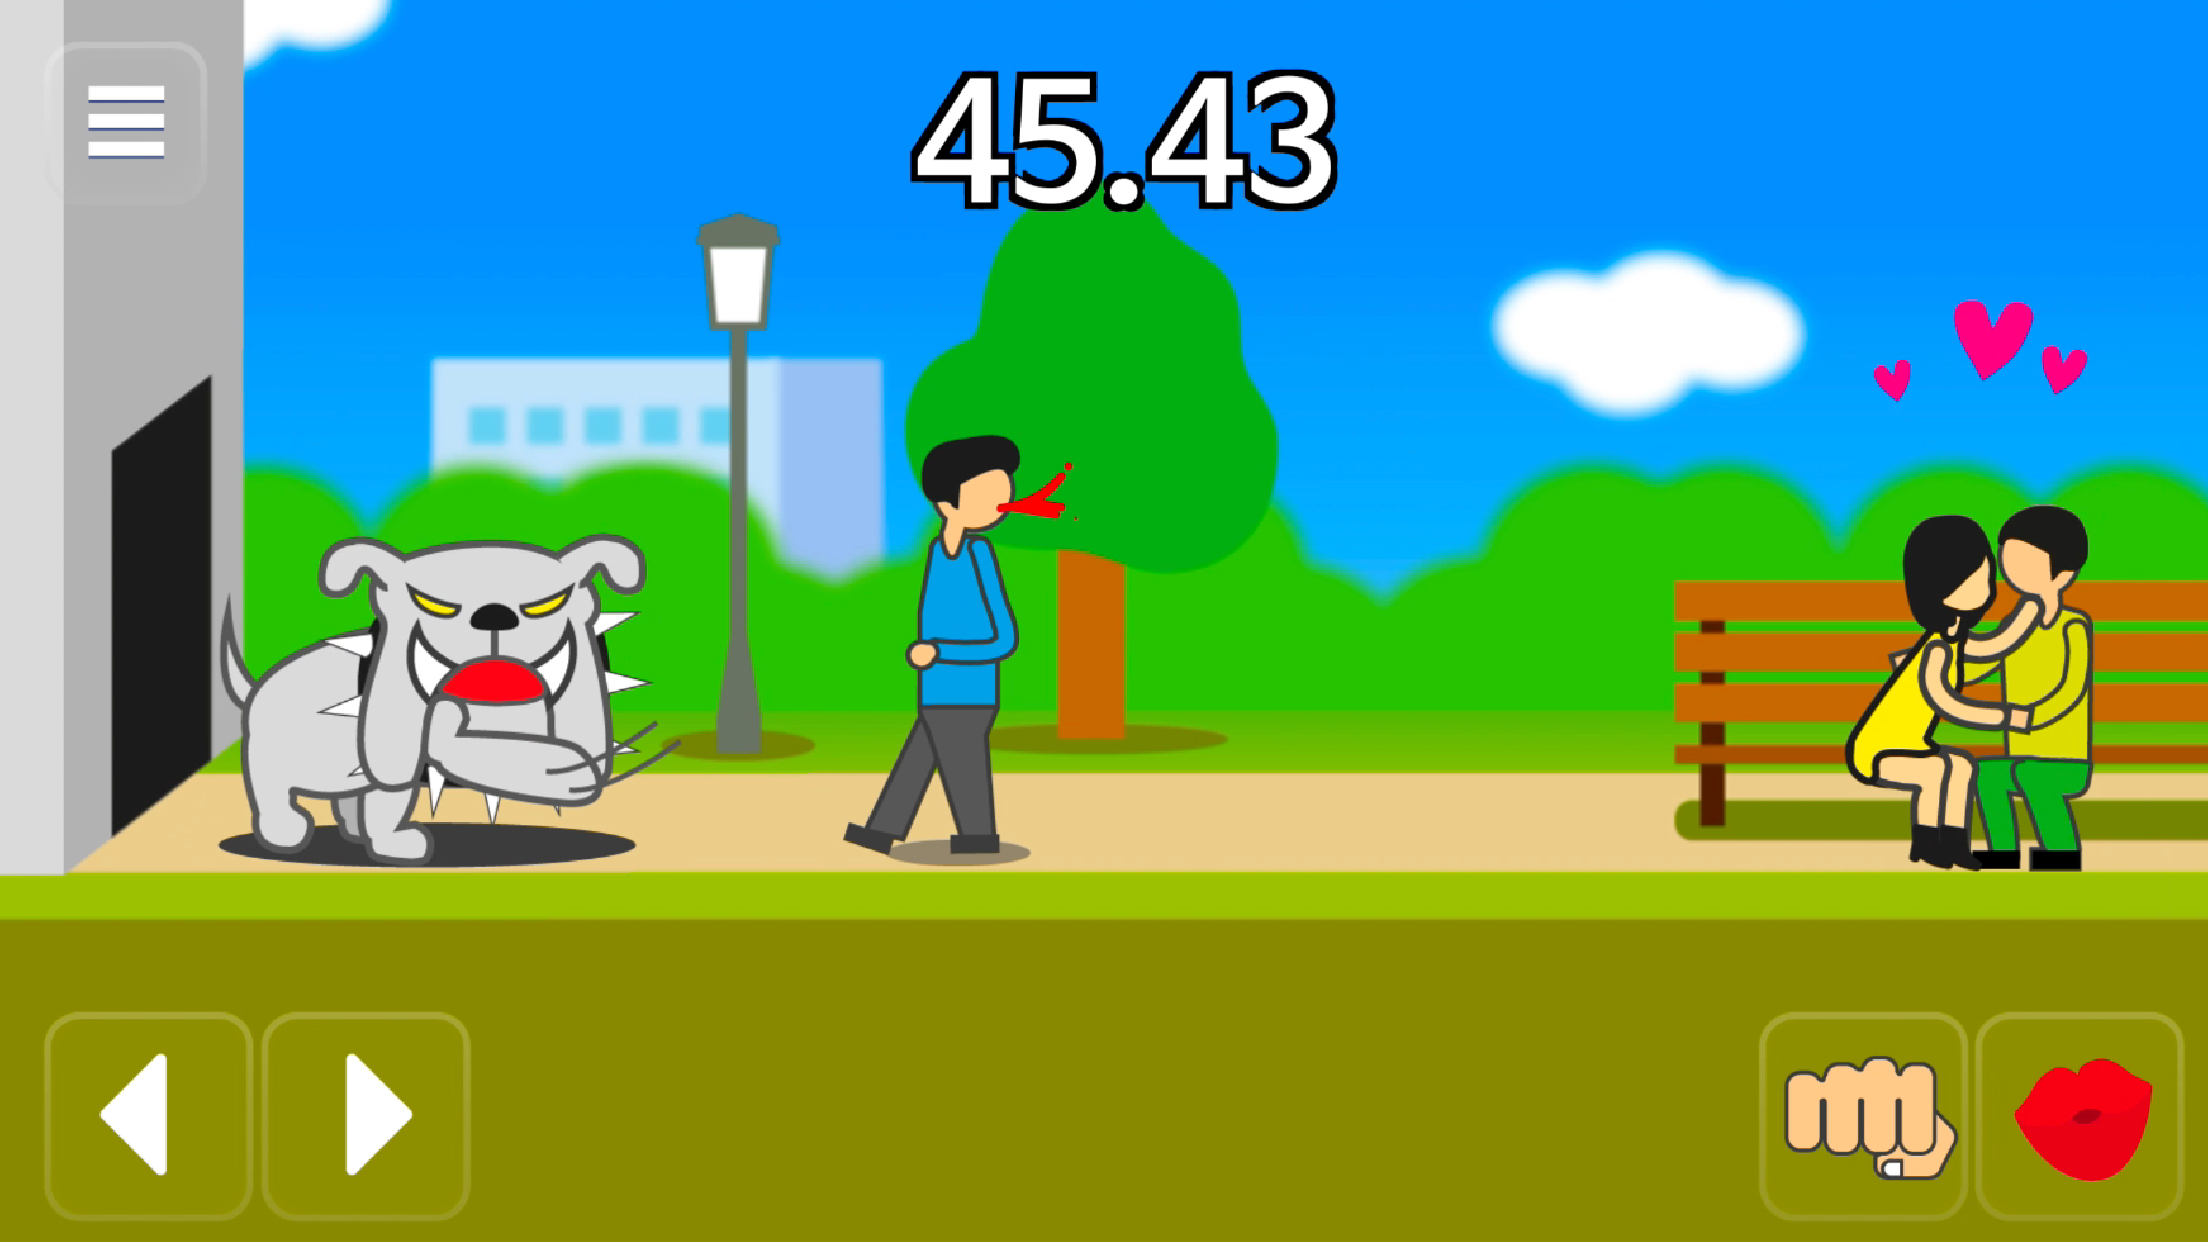 Hello, my game 'Meteor 60 seconds!' has just uploaded.